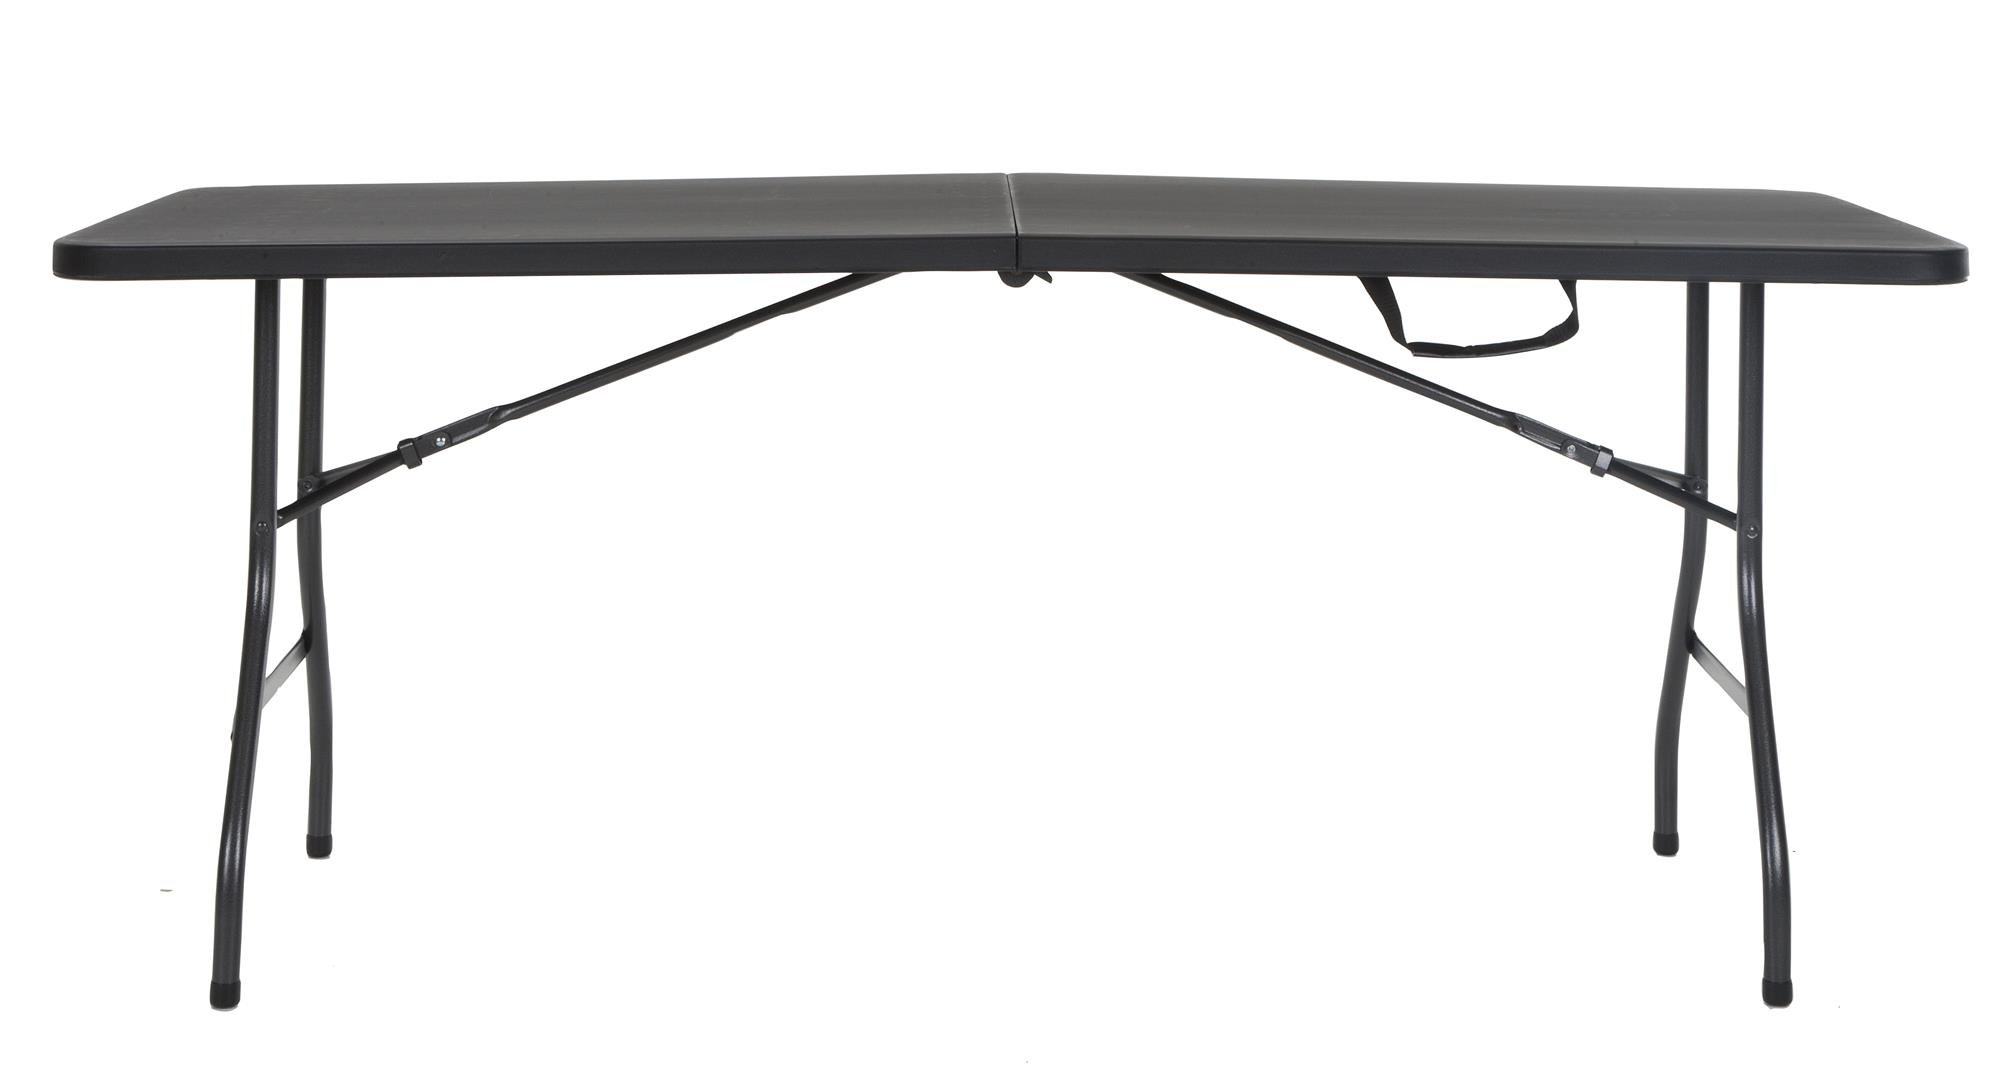 Cosco Deluxe 6 Foot X 30 Inch Fold In Half Blow Molded Folding Table, Black